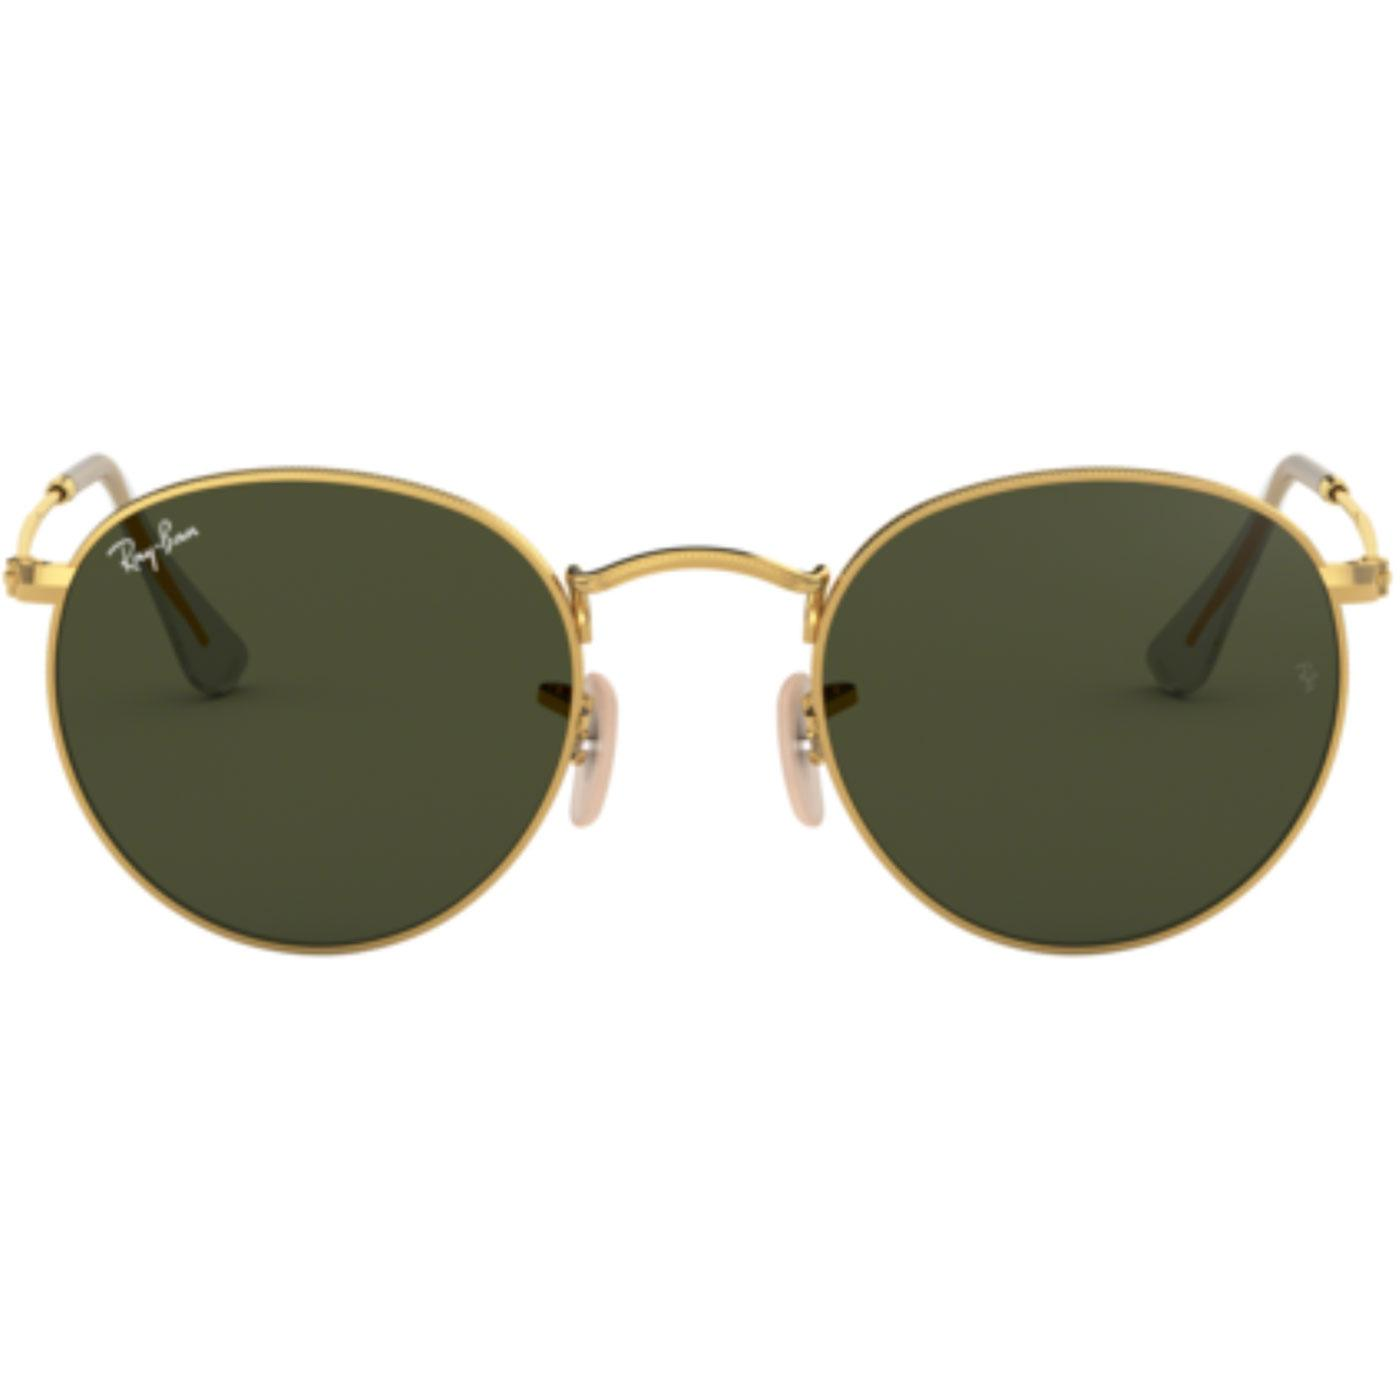 Ray-Ban Round Retro Mod 60s Sunglasses Gold/Green